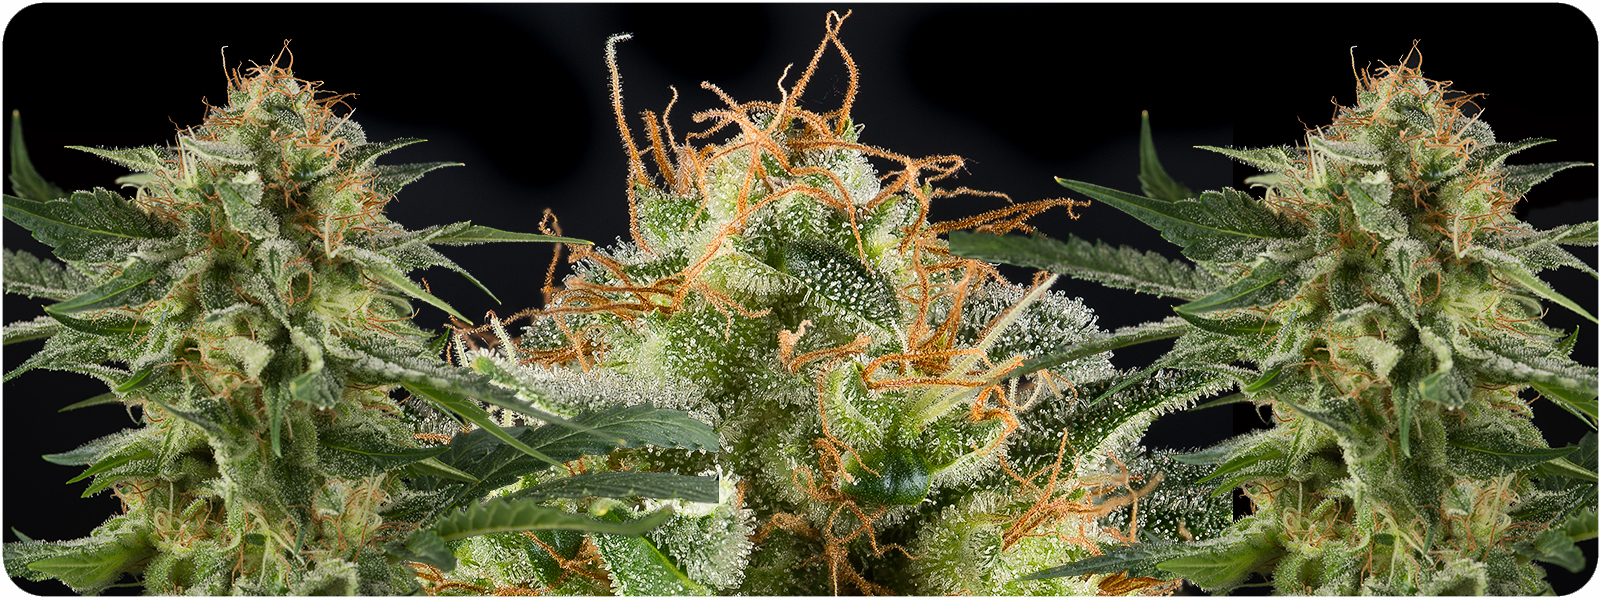 Sugarpunch seeds produces some of the strongest hybrids for sale with great taste and effect